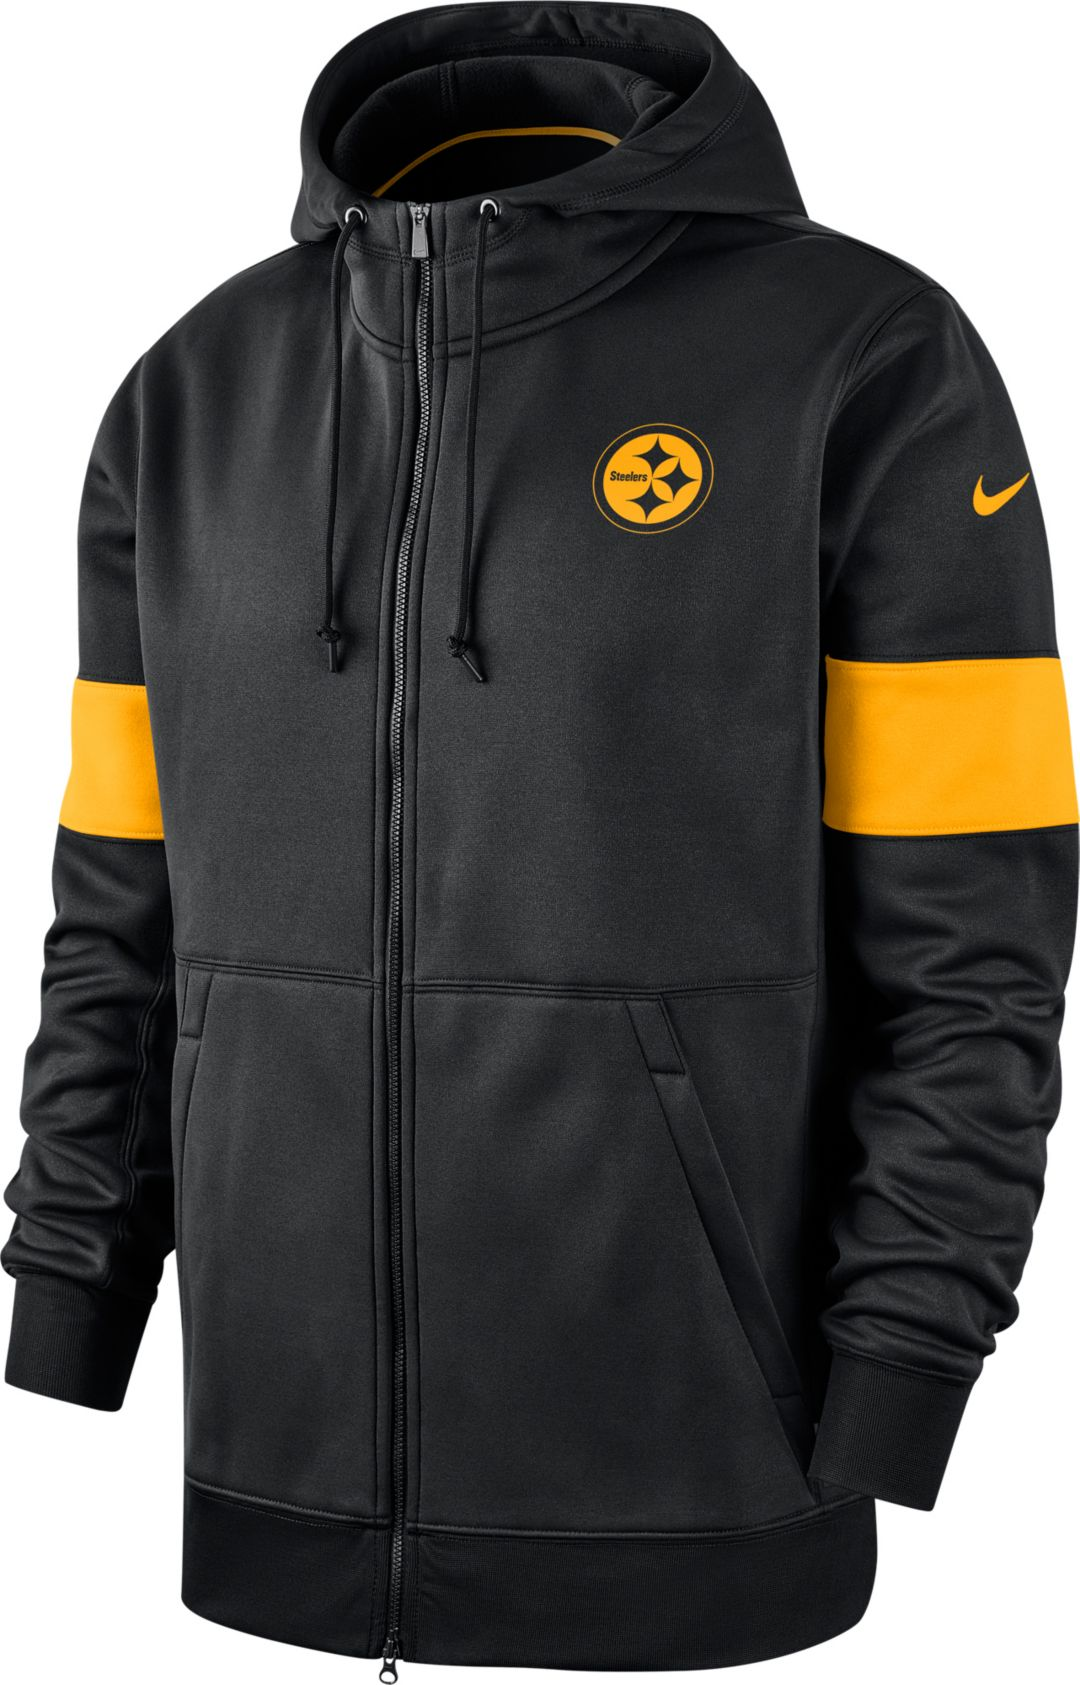 separation shoes 1512c a8509 Nike Men's Pittsburgh Steelers Sideline Therma-FIT Black Full-Zip Hoodie